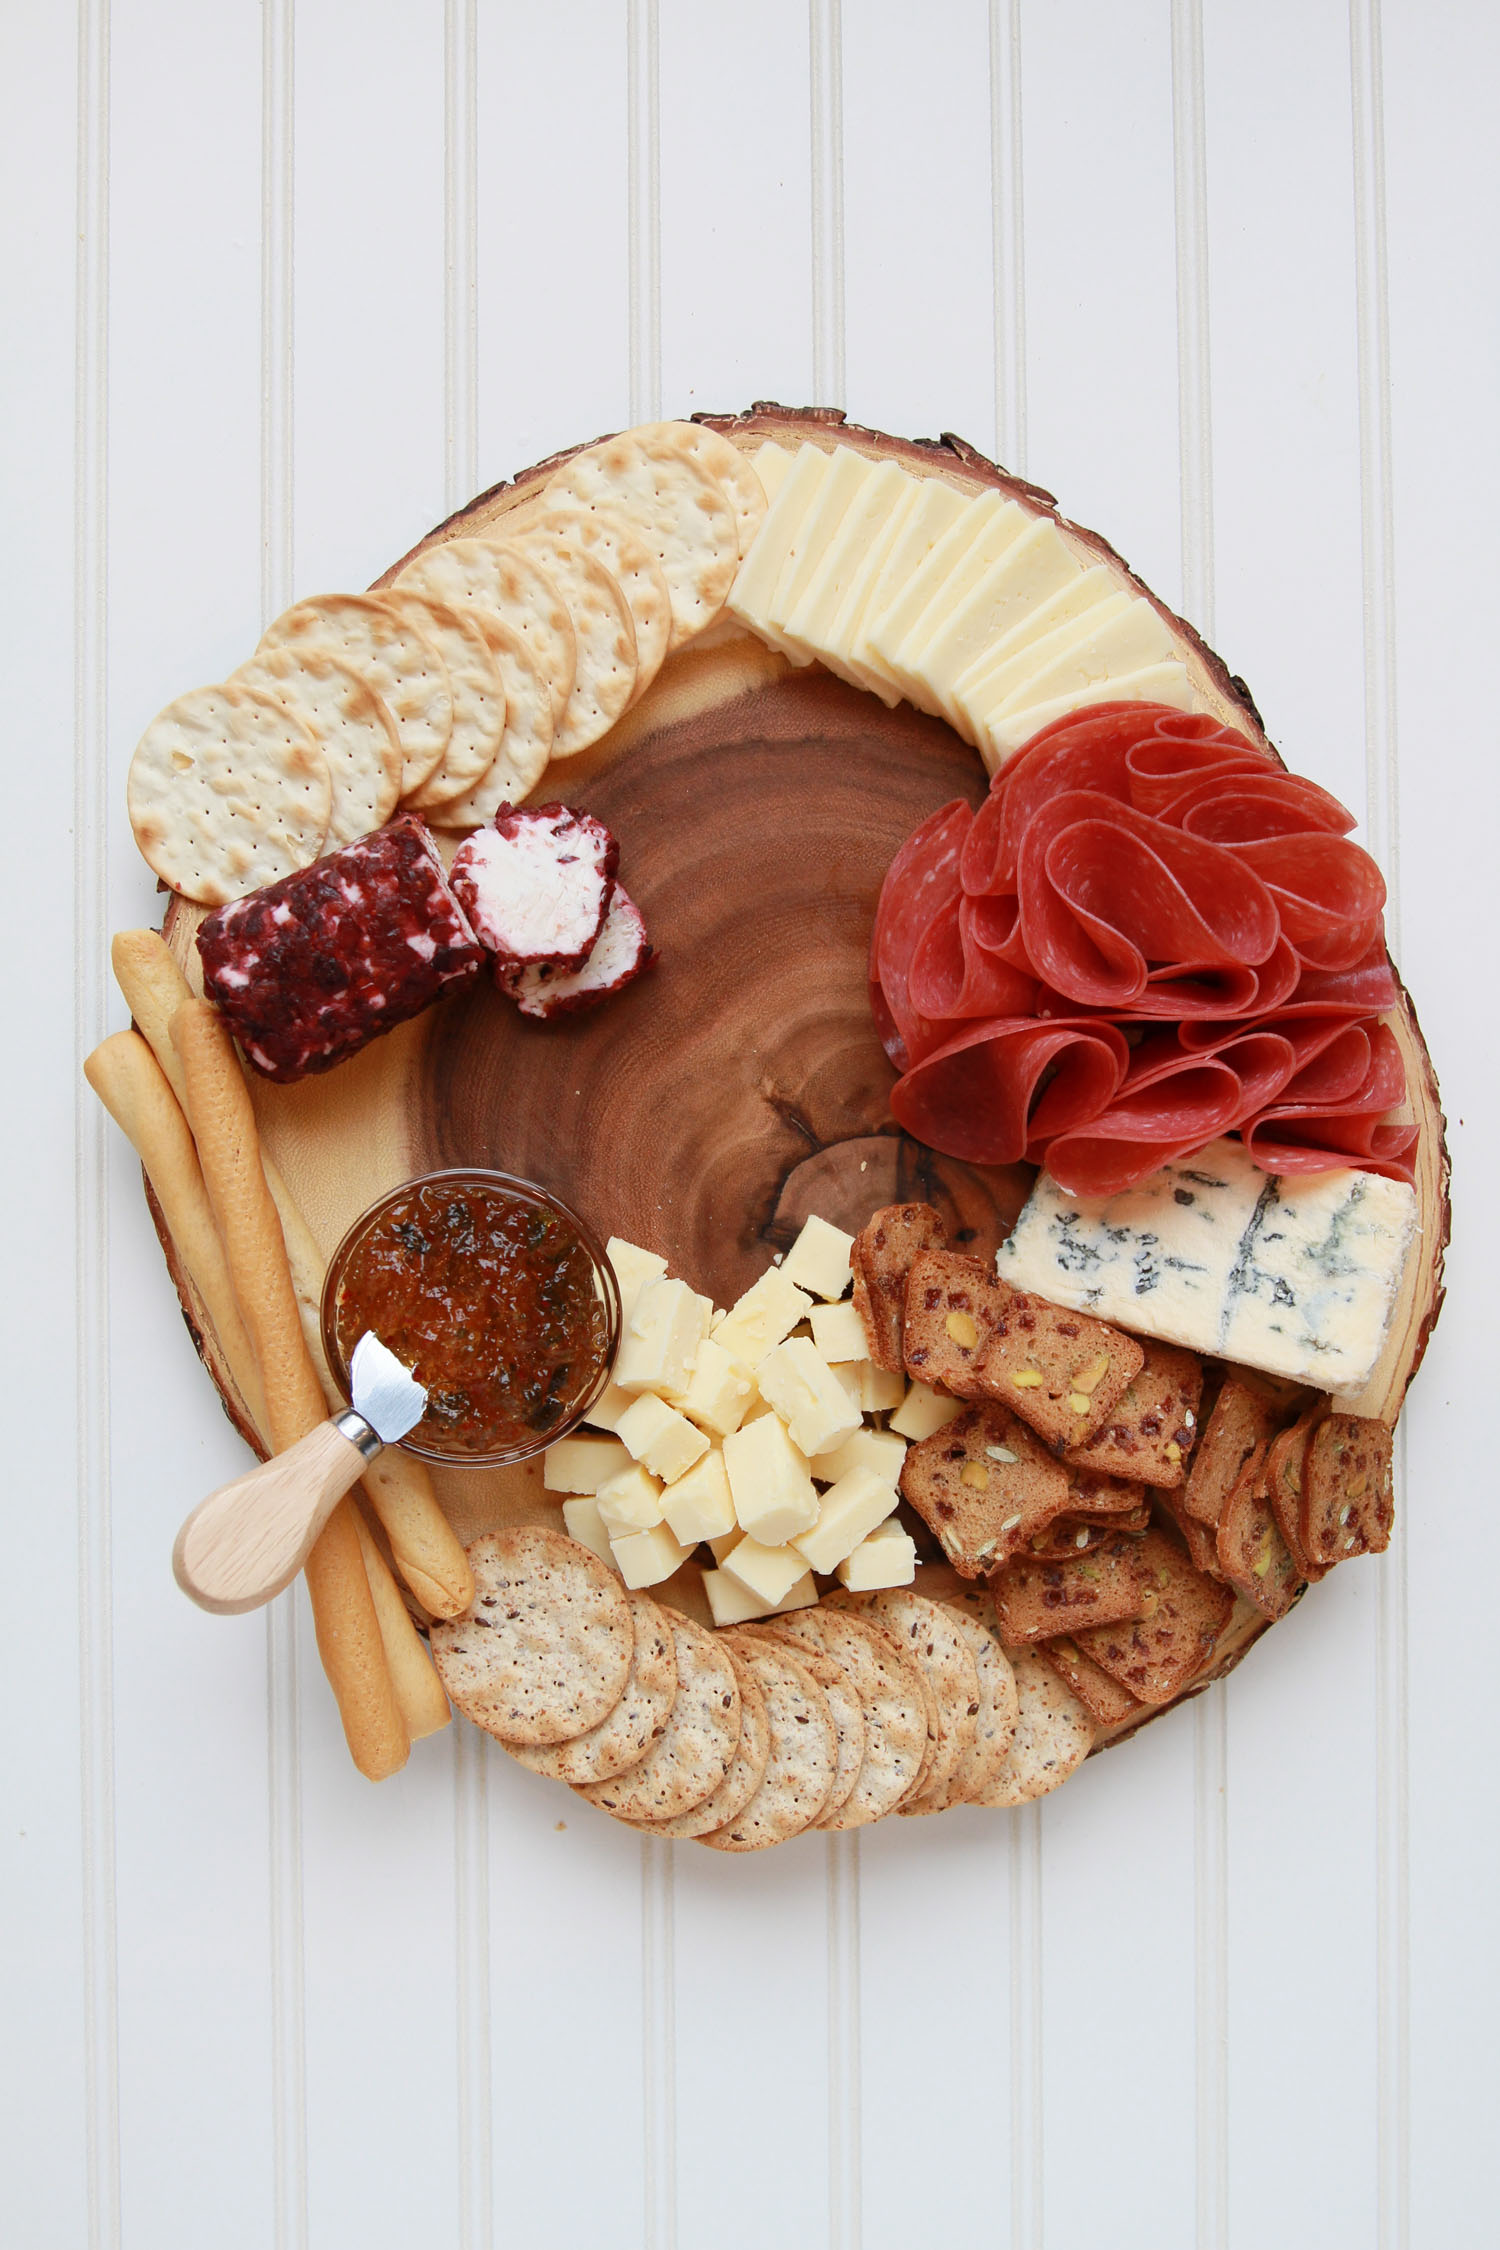 5 Steps to Building the Perfect Holiday Cheese Board